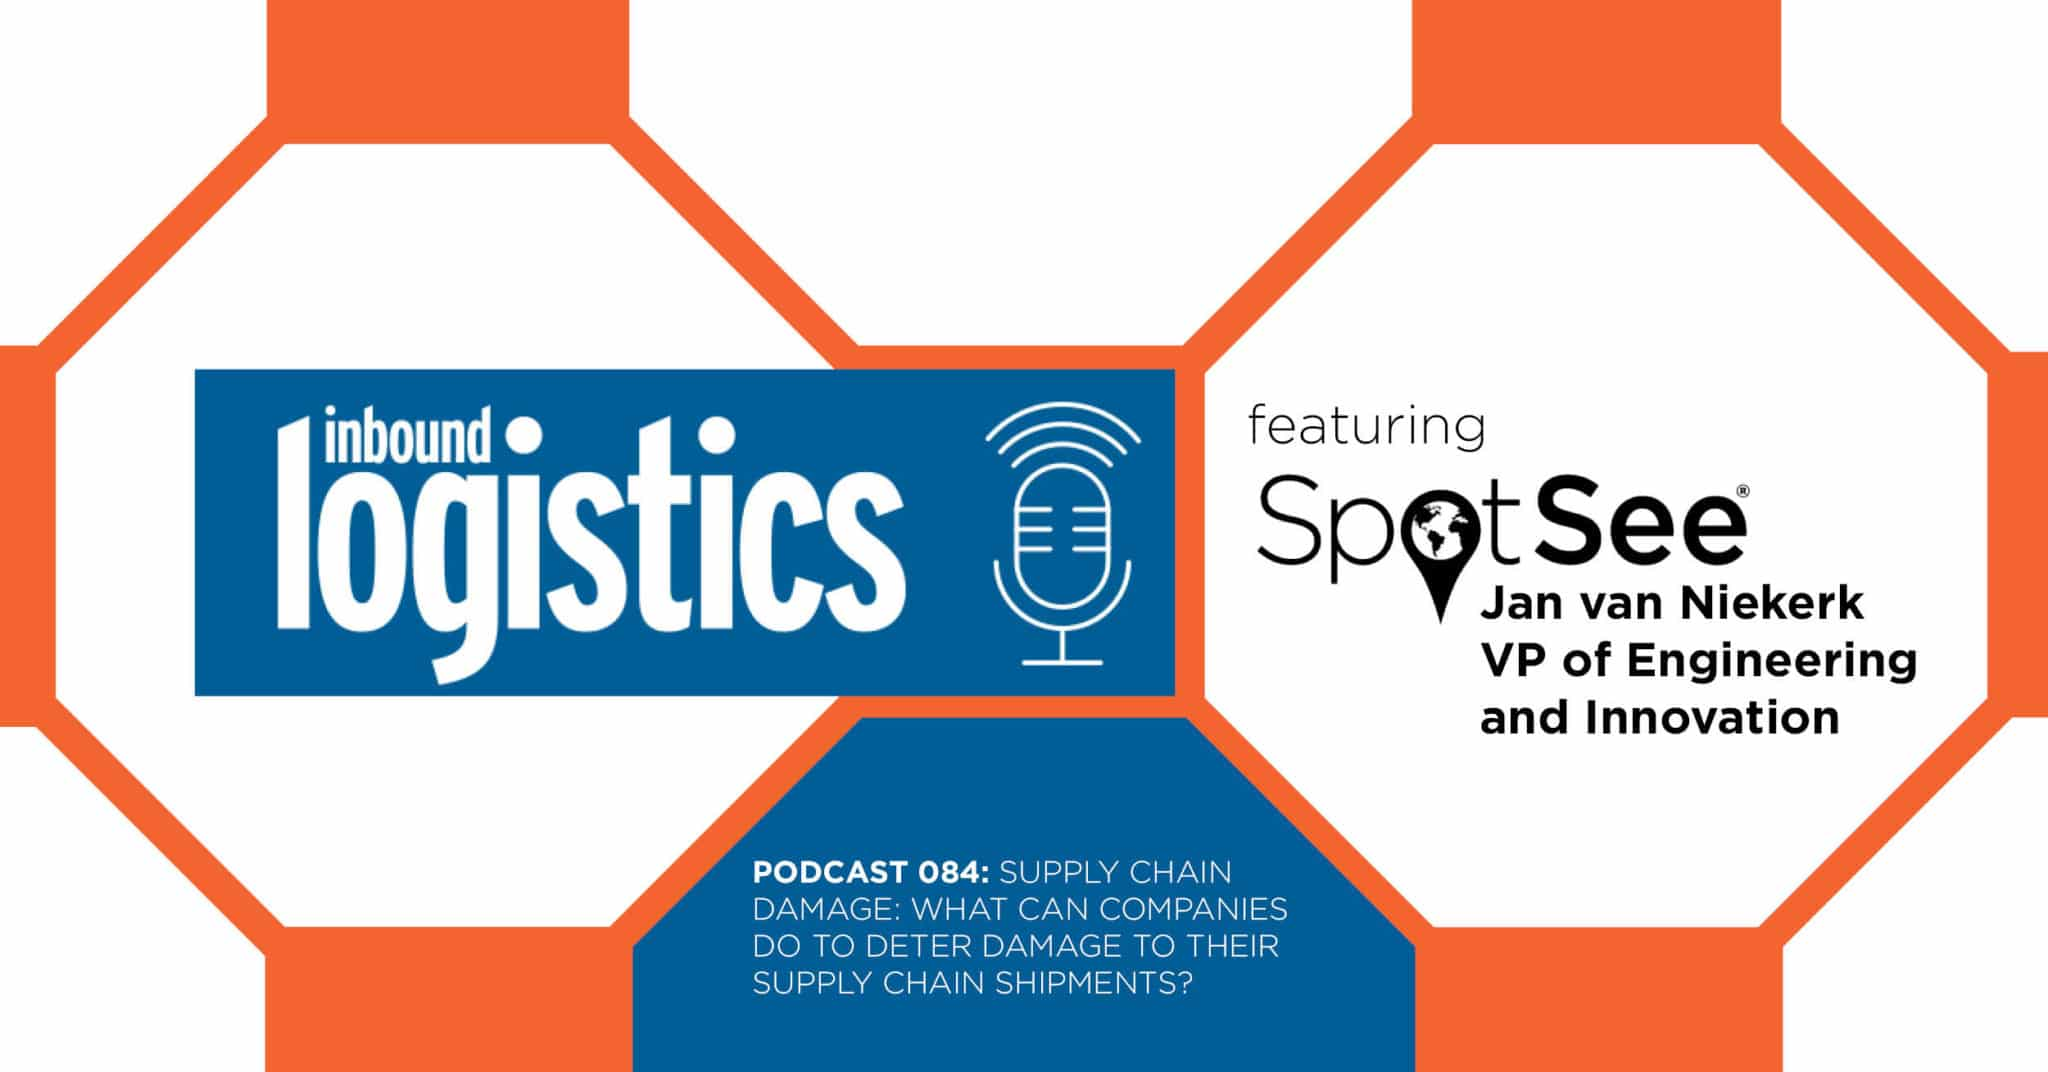 SpotSee Featured on Inbound Logistics Podcast